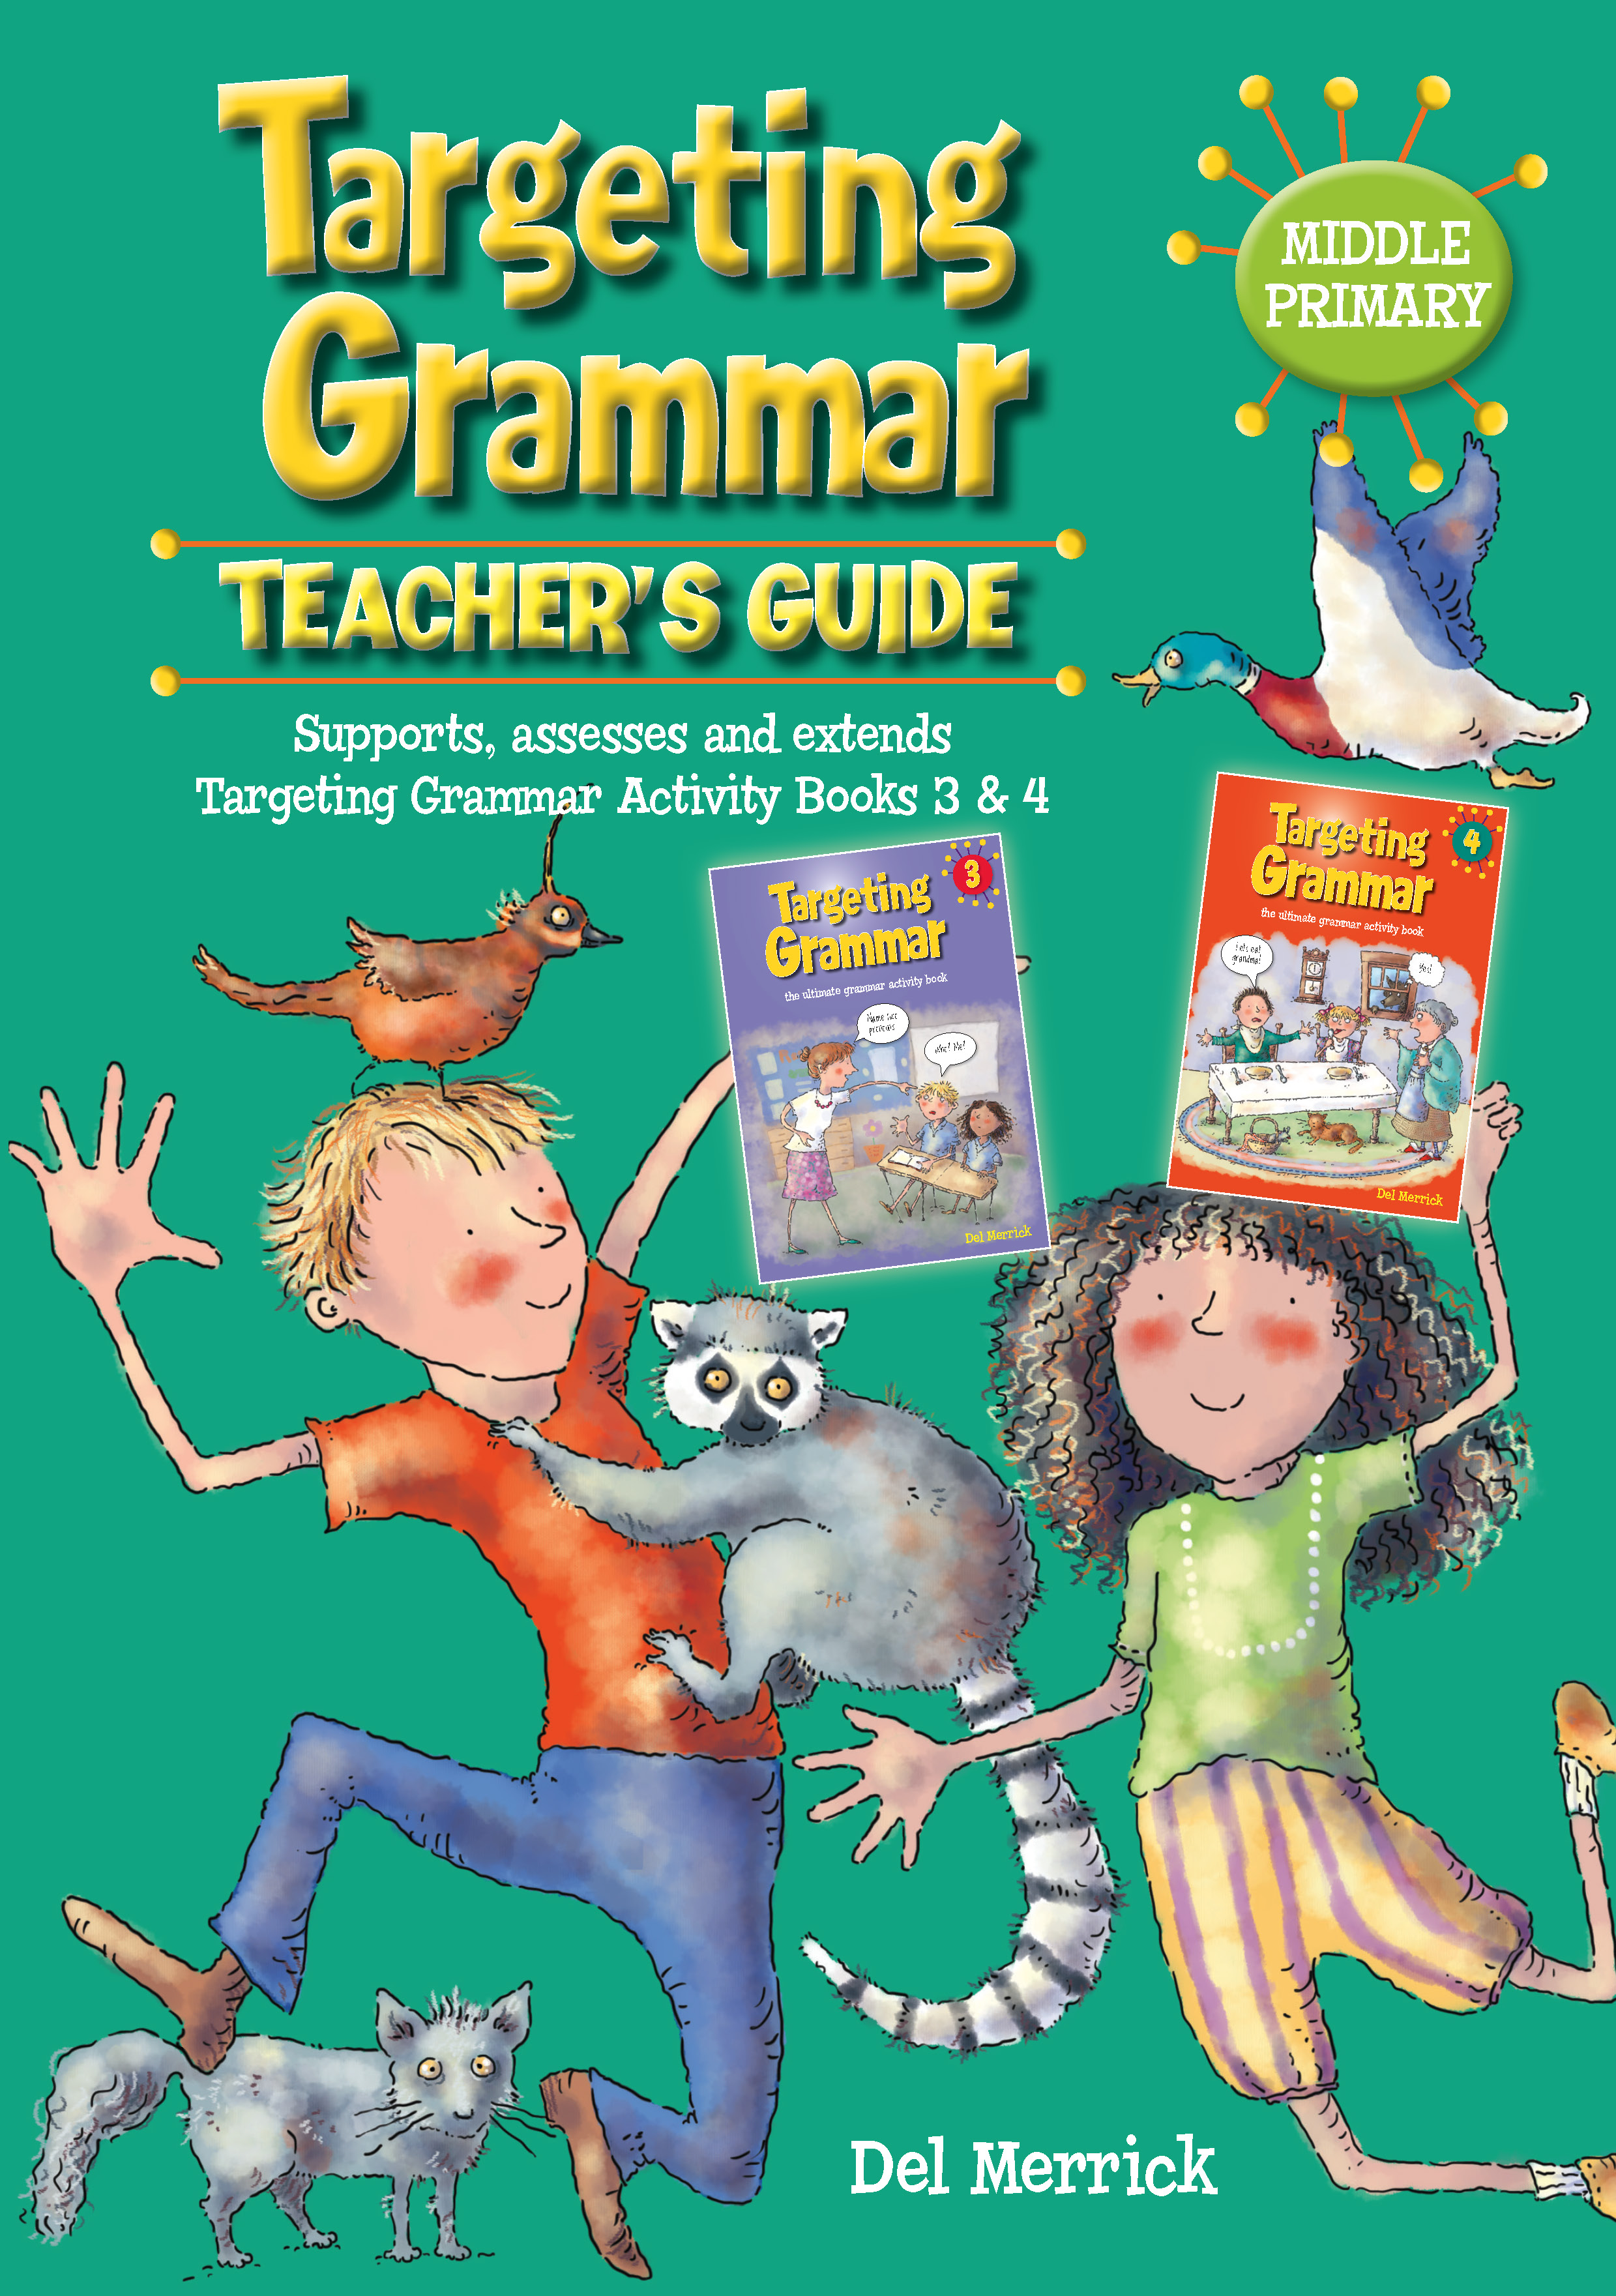 Targeting Grammar Teacher's Guide Middle Primary